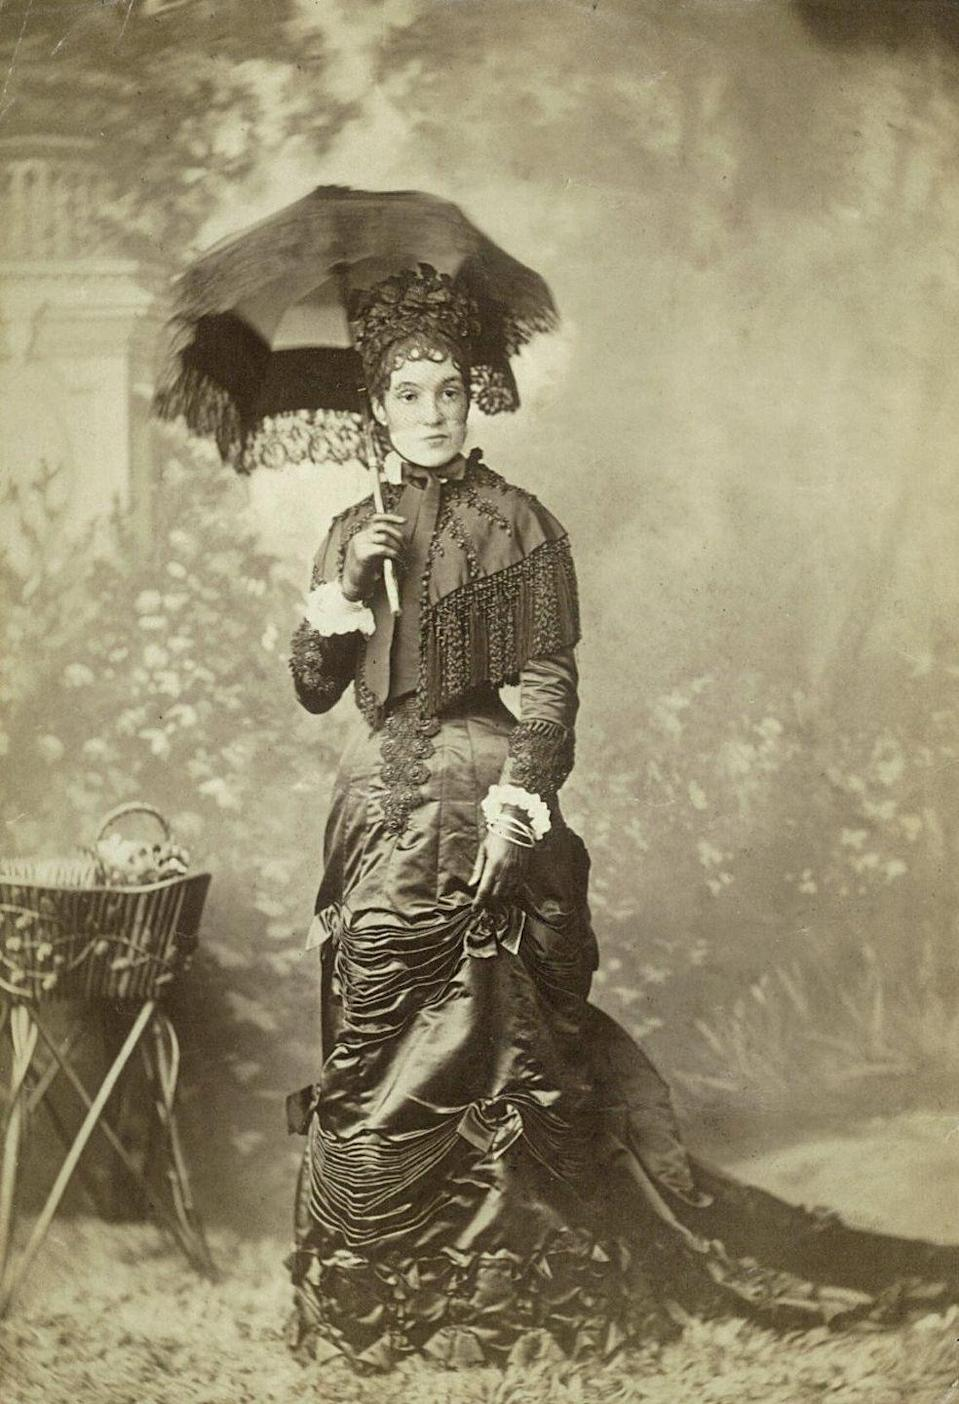 <p>Entering the Victorian era, women's dresses were almost uniform like. Black or white was the color of choice for conservative, well-to-do women, and styles were designed with high necks and long sleeves. </p>